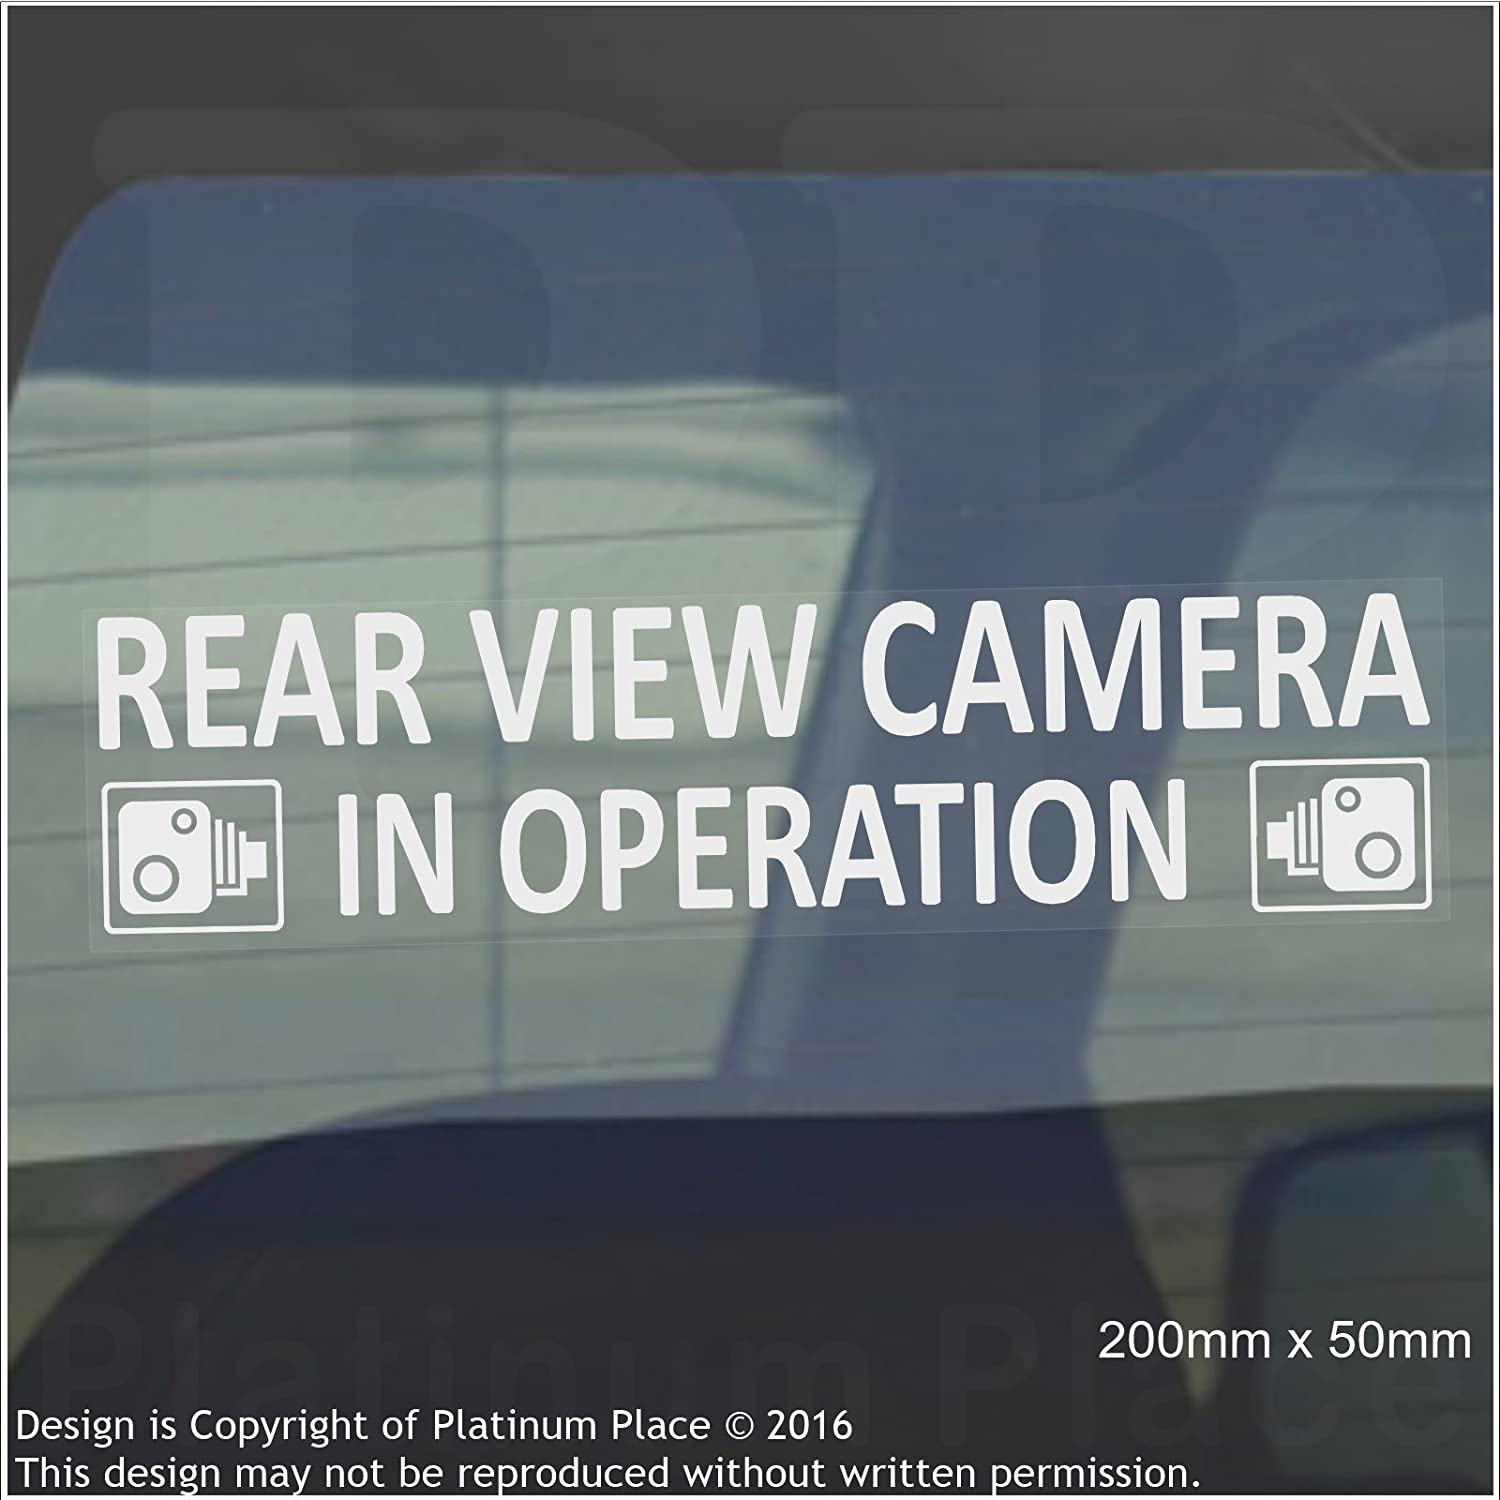 CCTV Sign-Van,Lorry,Truck,Taxi,Bus,Mini Cab,Minicab Safety and Security-Go Pro,Dashcam Platinum Place 2 x INTERNAL Window 200 x 50mm-Rear View Camera In Operation Warning Stickers-White on Clear-